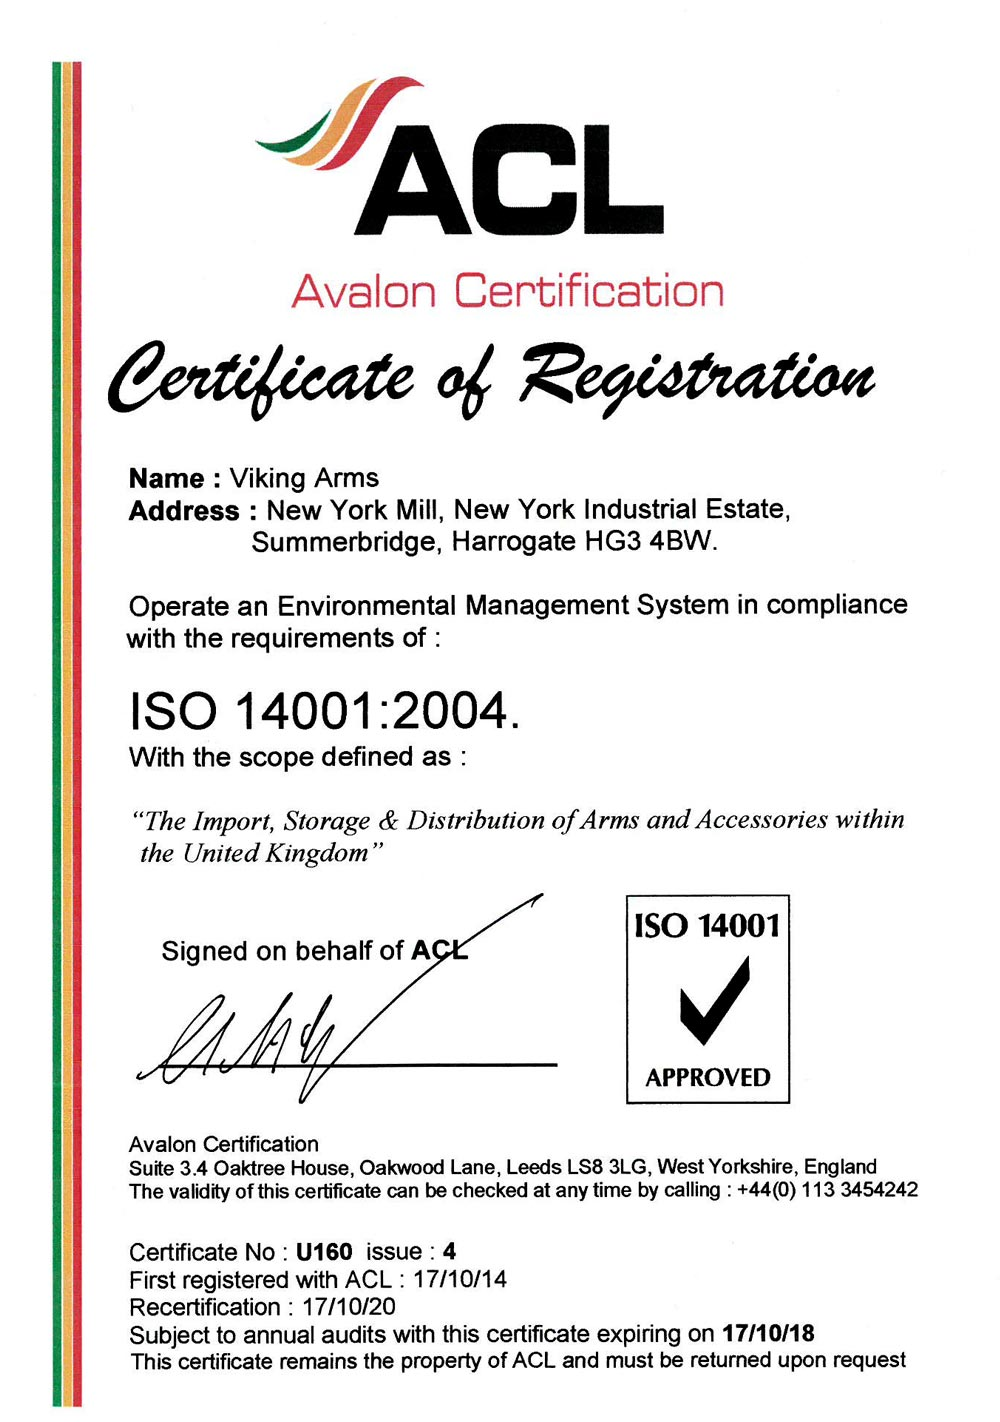 ISO CERTIFICATION | Viking Arms Ltd.